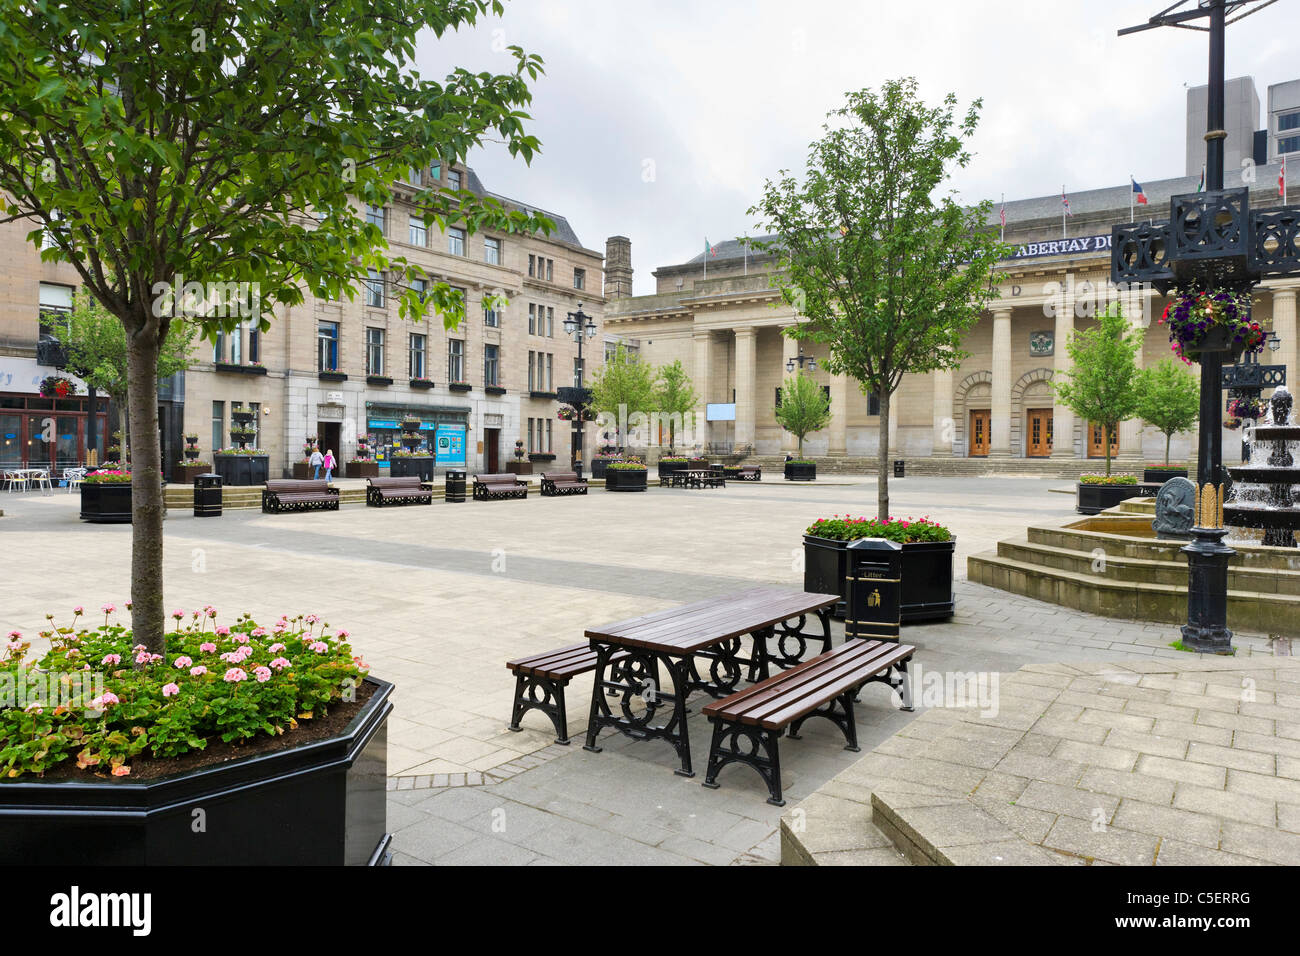 City Square in the town centre with the Caird Hall in the background, Dundee, Central Lowlands, Scotland, UK - Stock Image